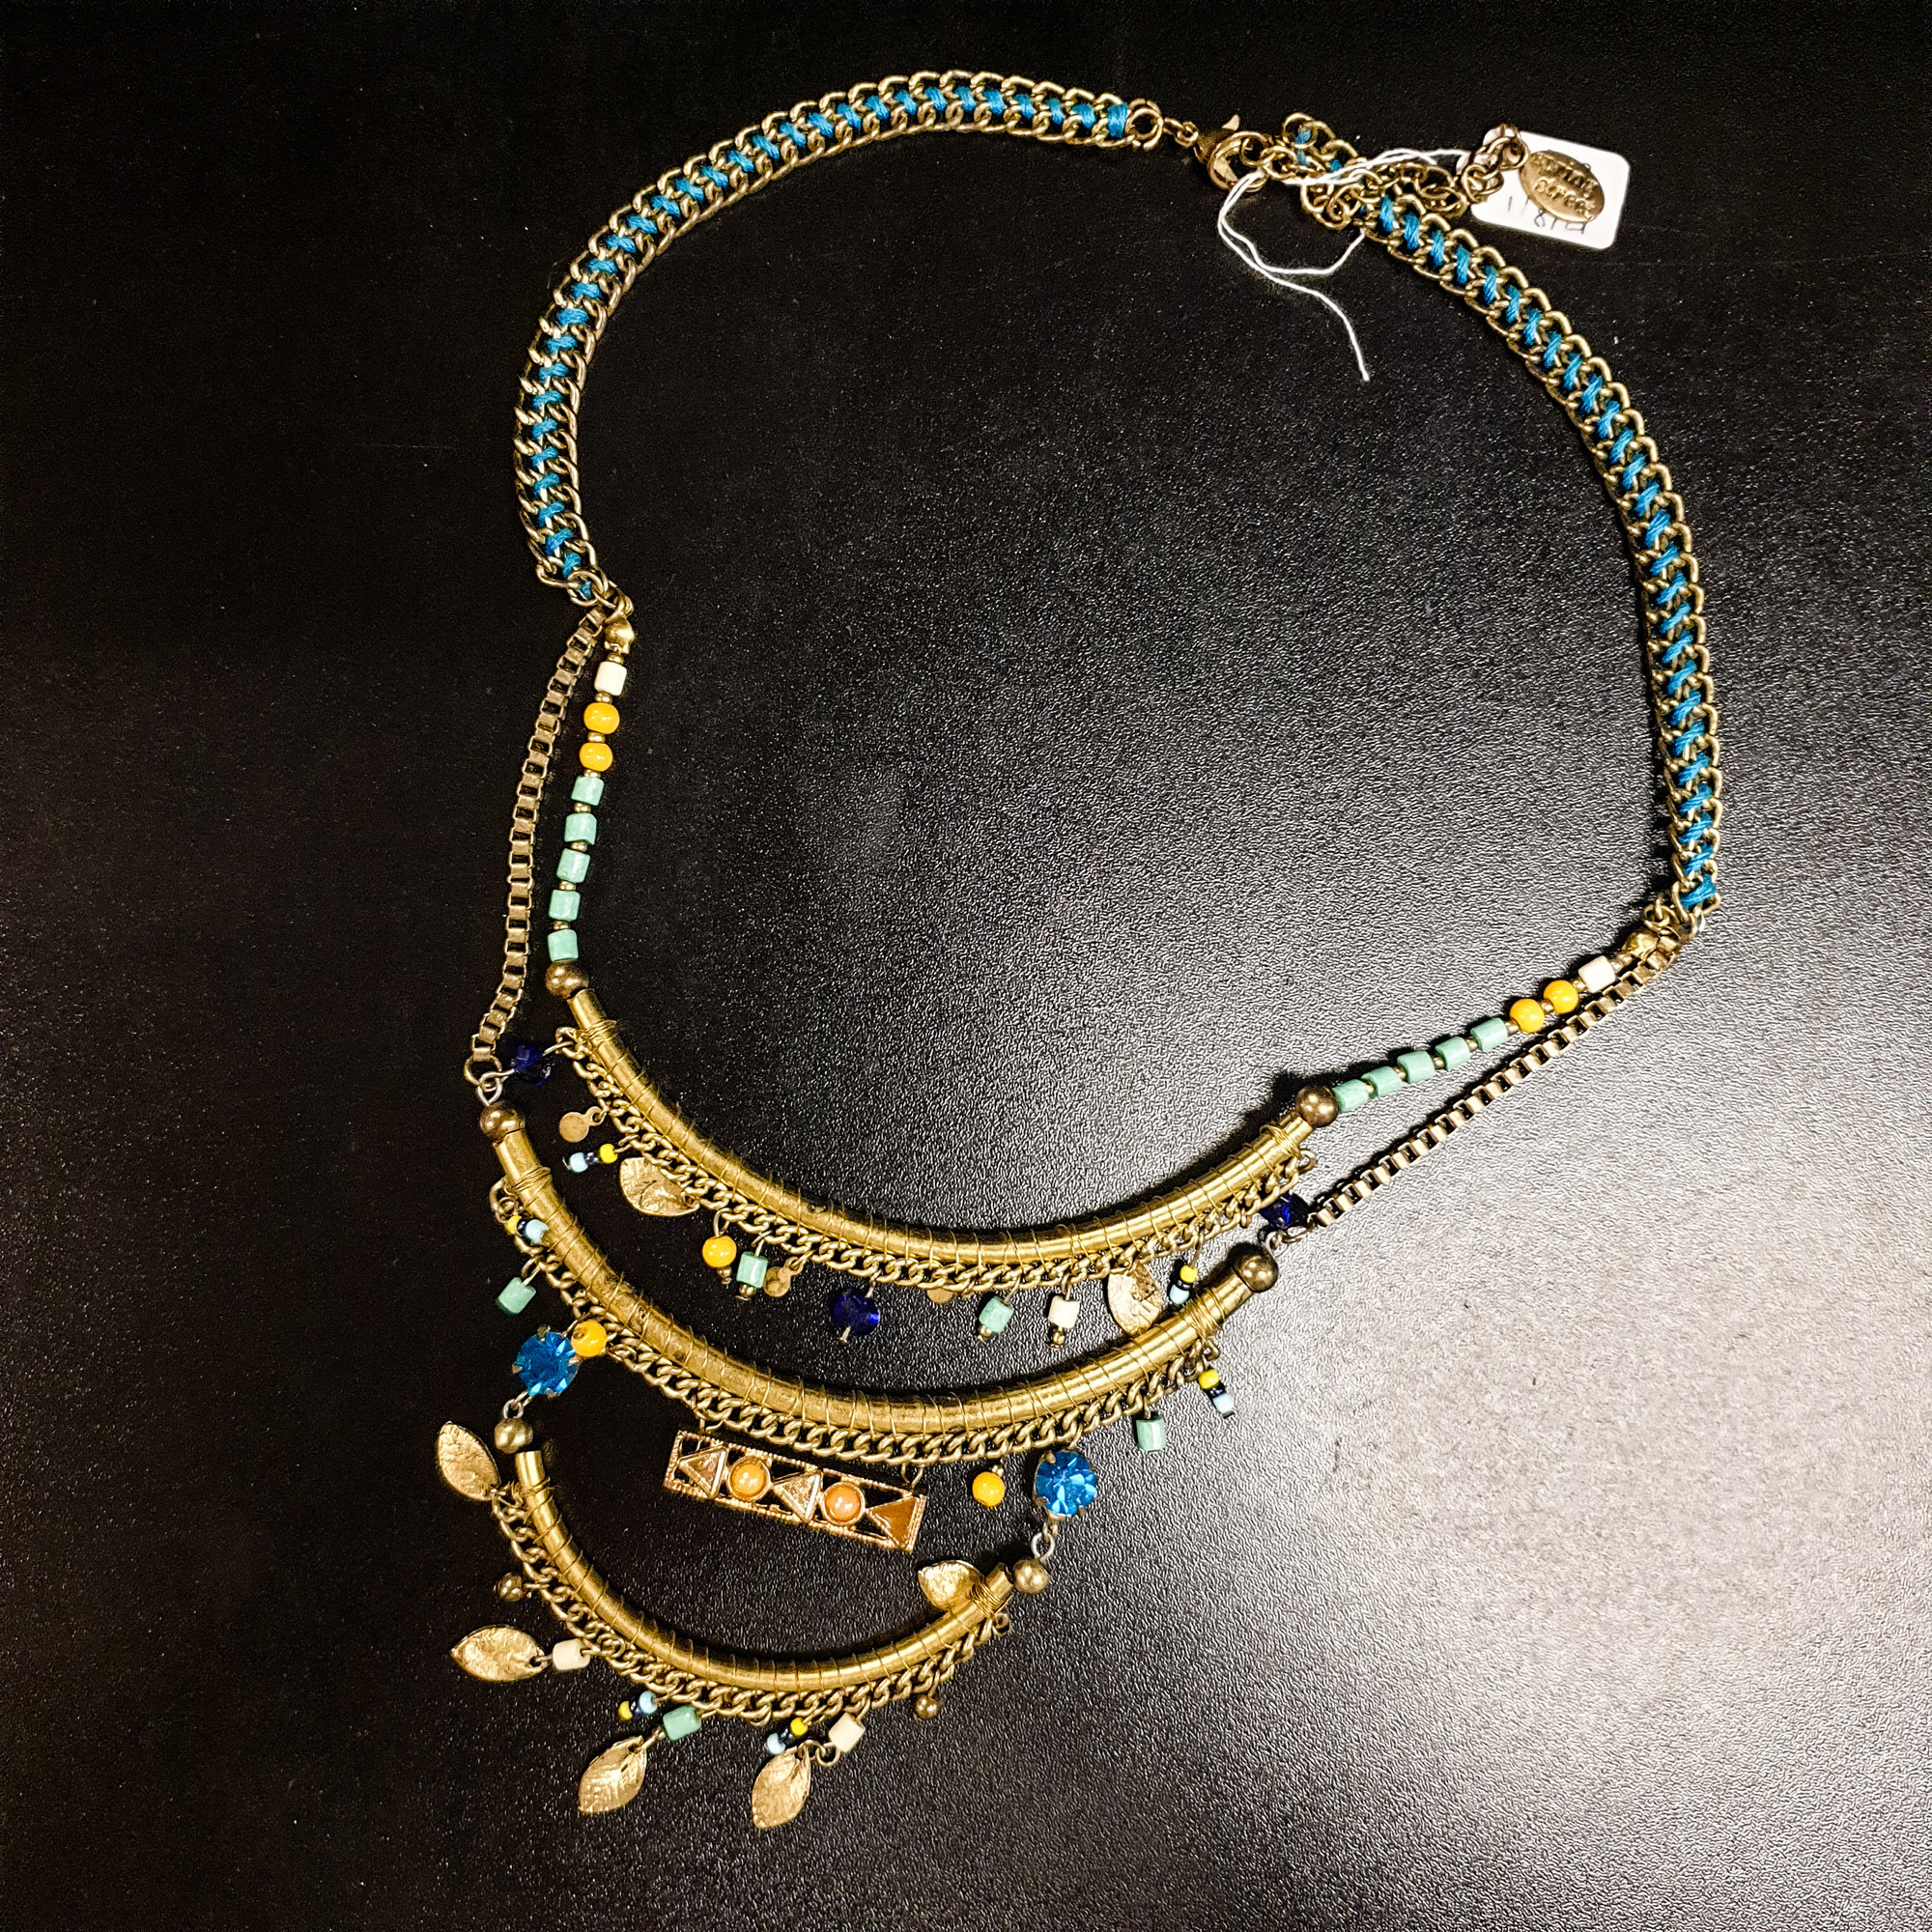 Beautiful Spring Street Necklace.<br /> - Gold and teal color<br /> - Multicolor beads and charms<br /> - Adjustable closure<br /> - Necklace length: 12.5 in.<br /> <br /> * Please note that these measurements and pictures are for reference only and may vary slightly from the original.